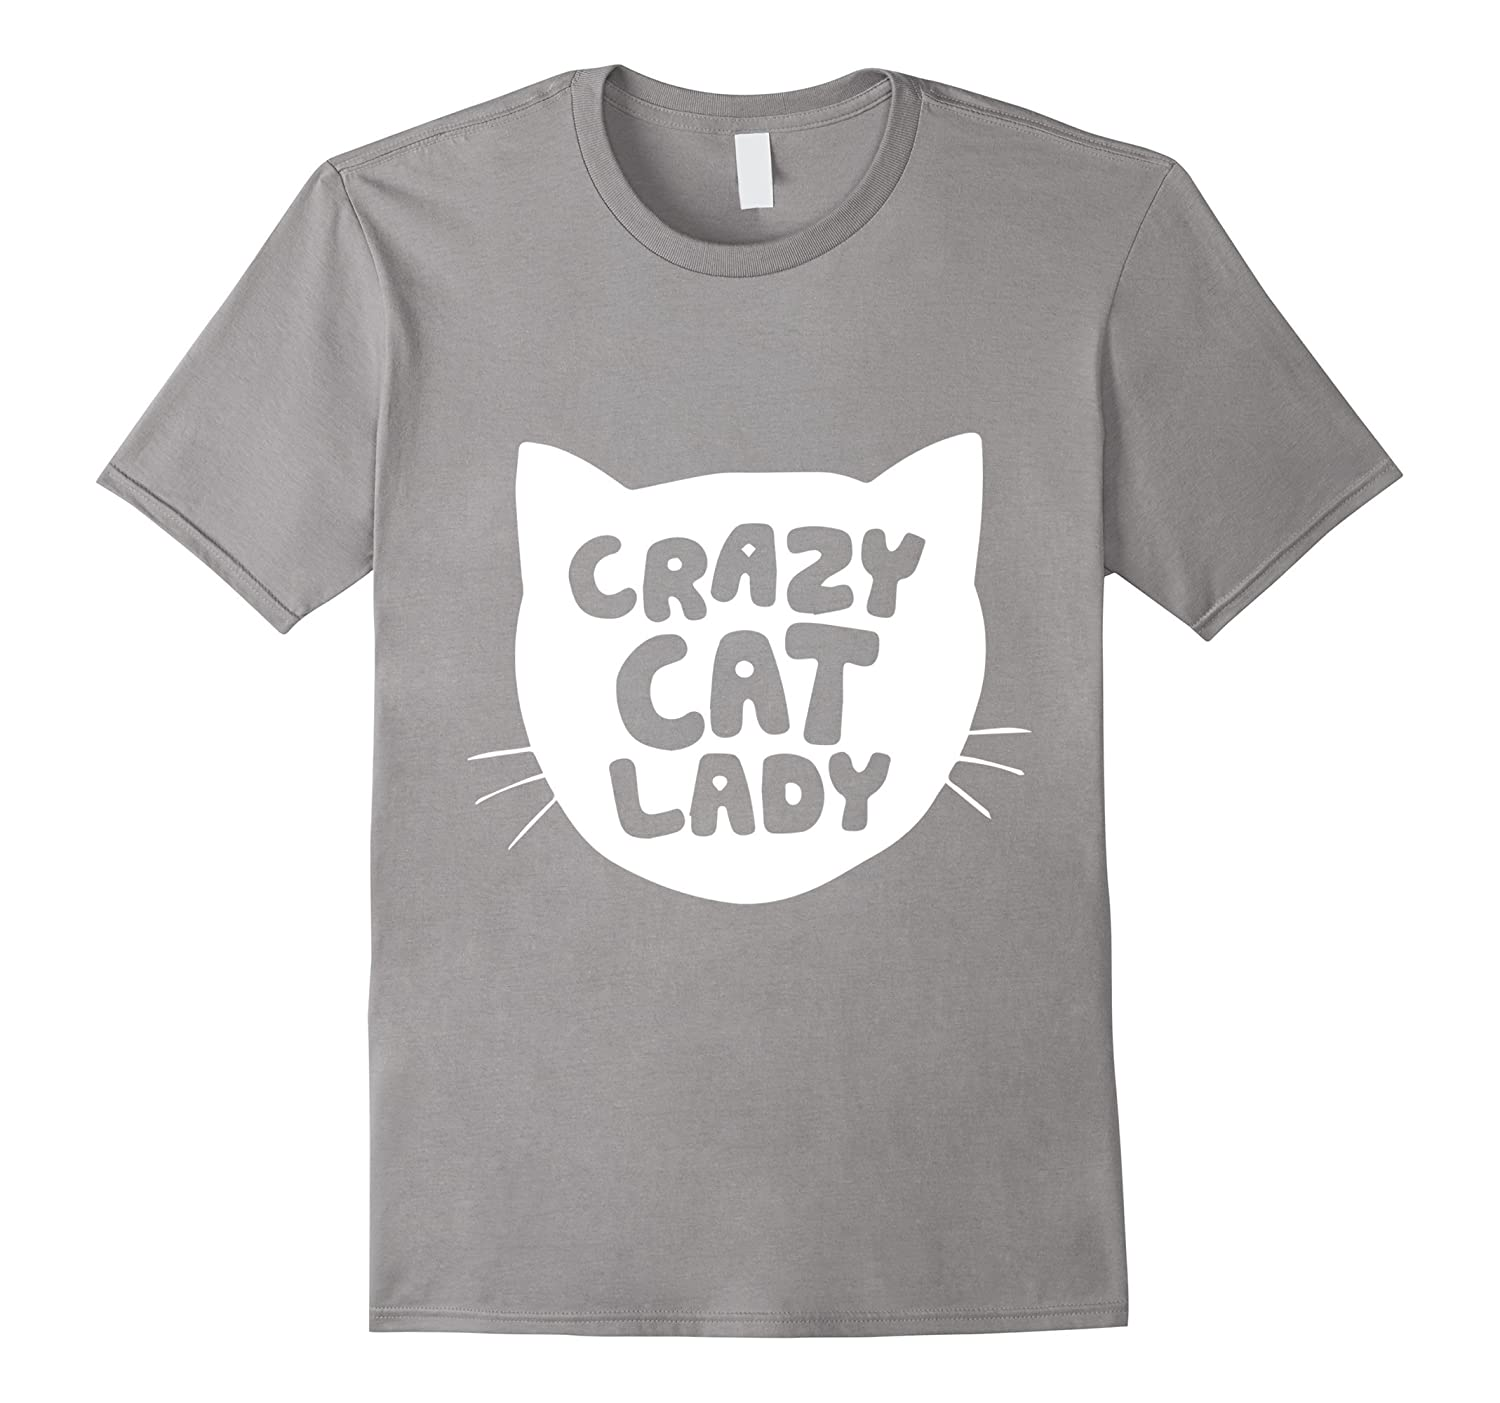 'Crazy Cat Lady' Short Sleeve Cotton Comfort Funny Tees-Art